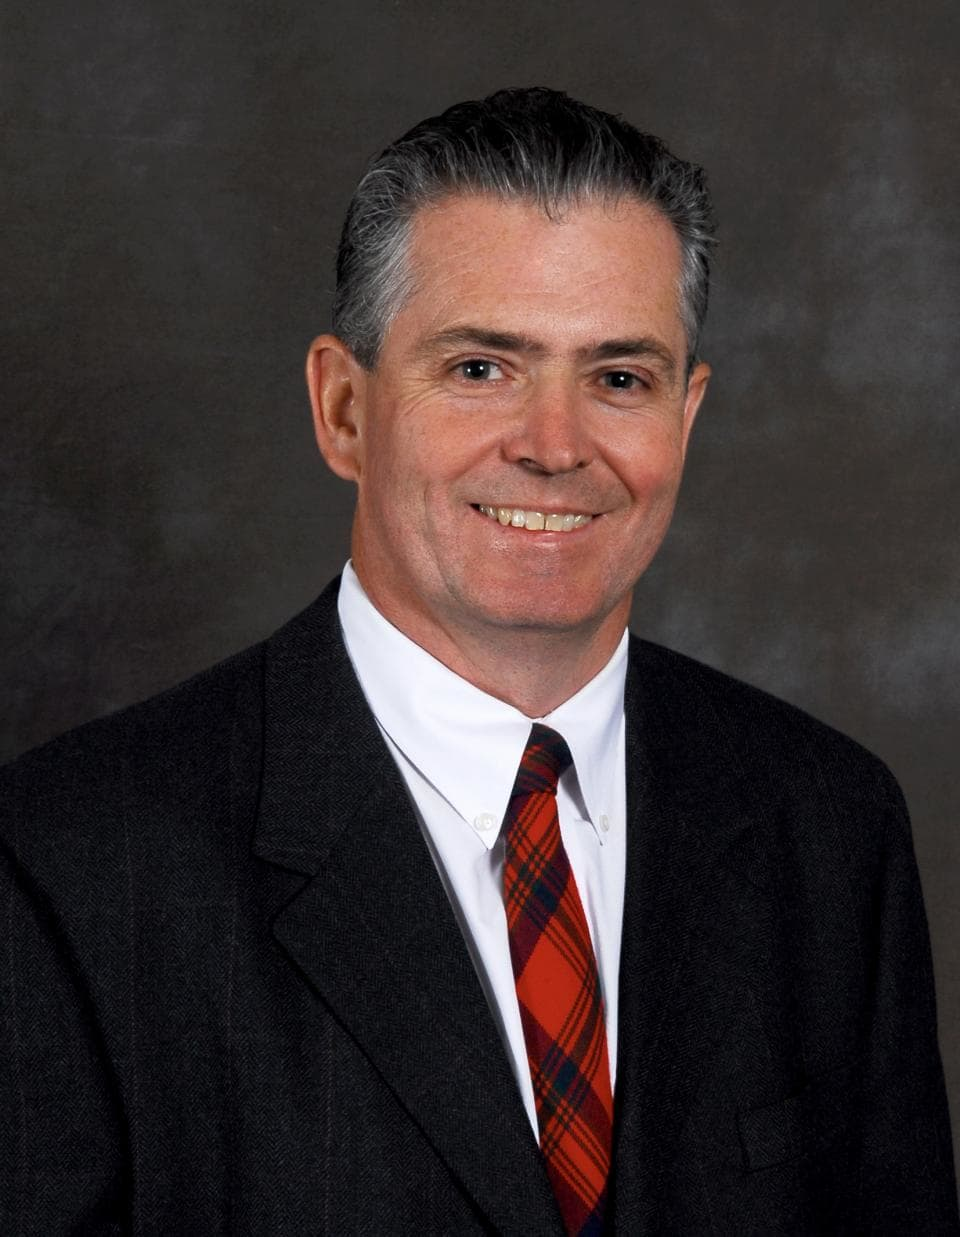 Edward J Mcginnis, MD Orthopaedic Surgery